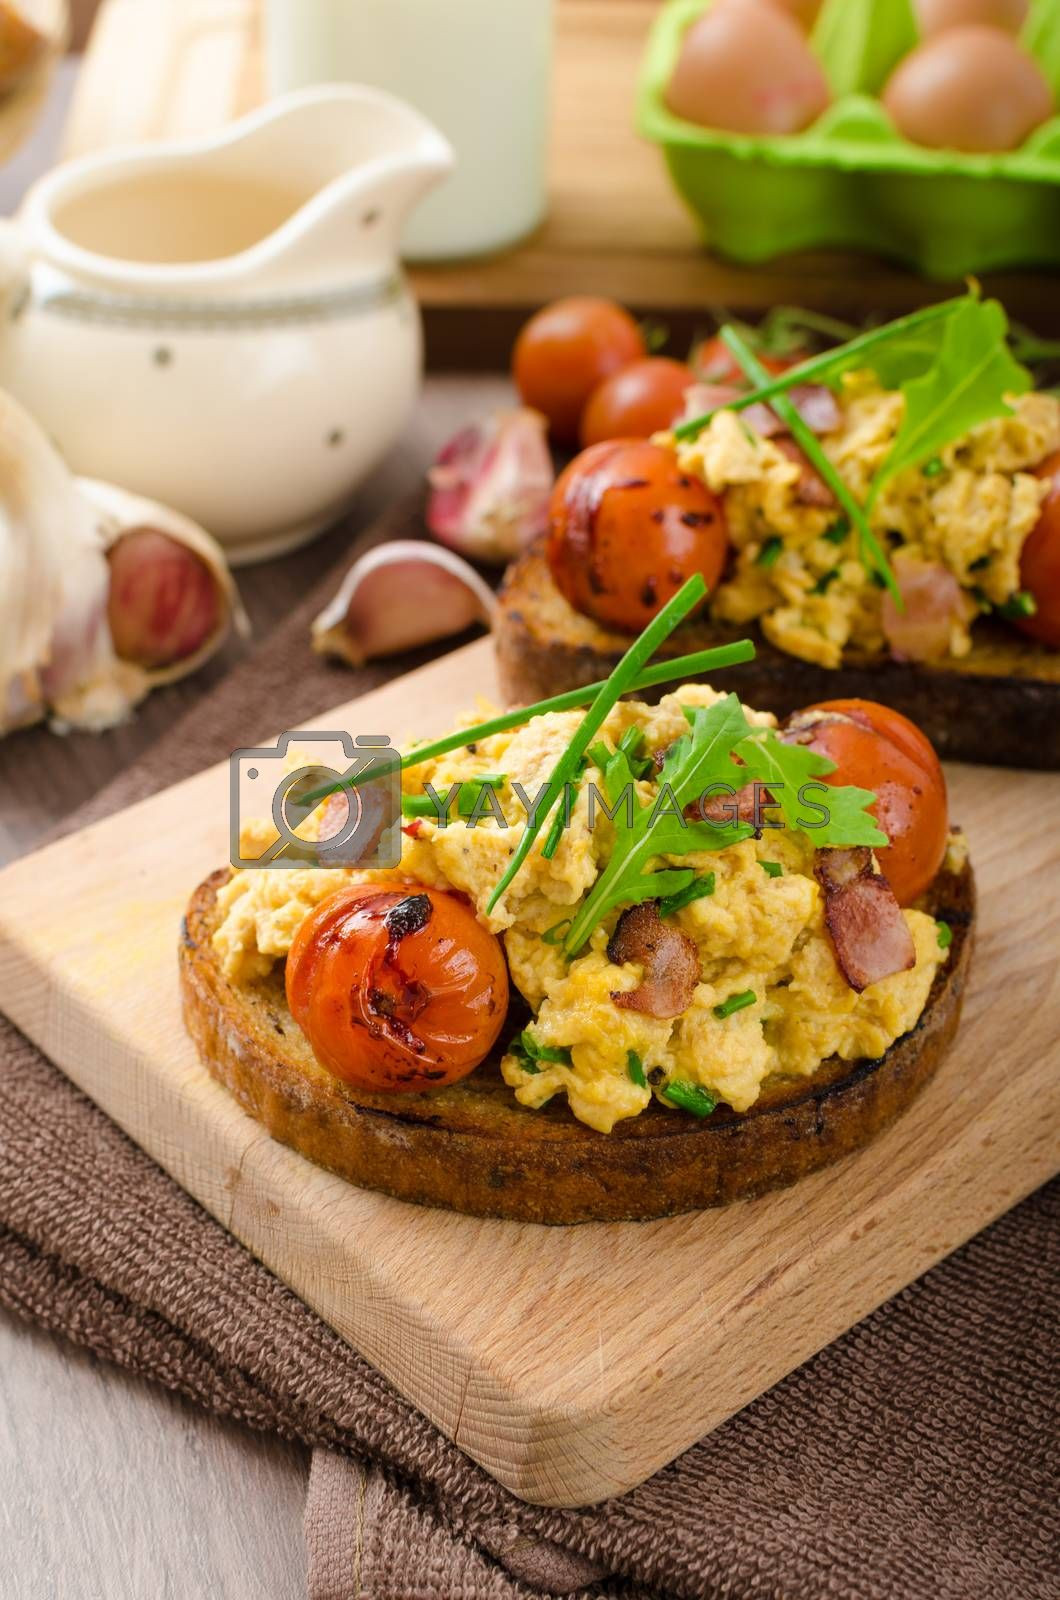 Scrambled eggs on toasted bread with bacon, herbs and tomato poached in balsamic reduction